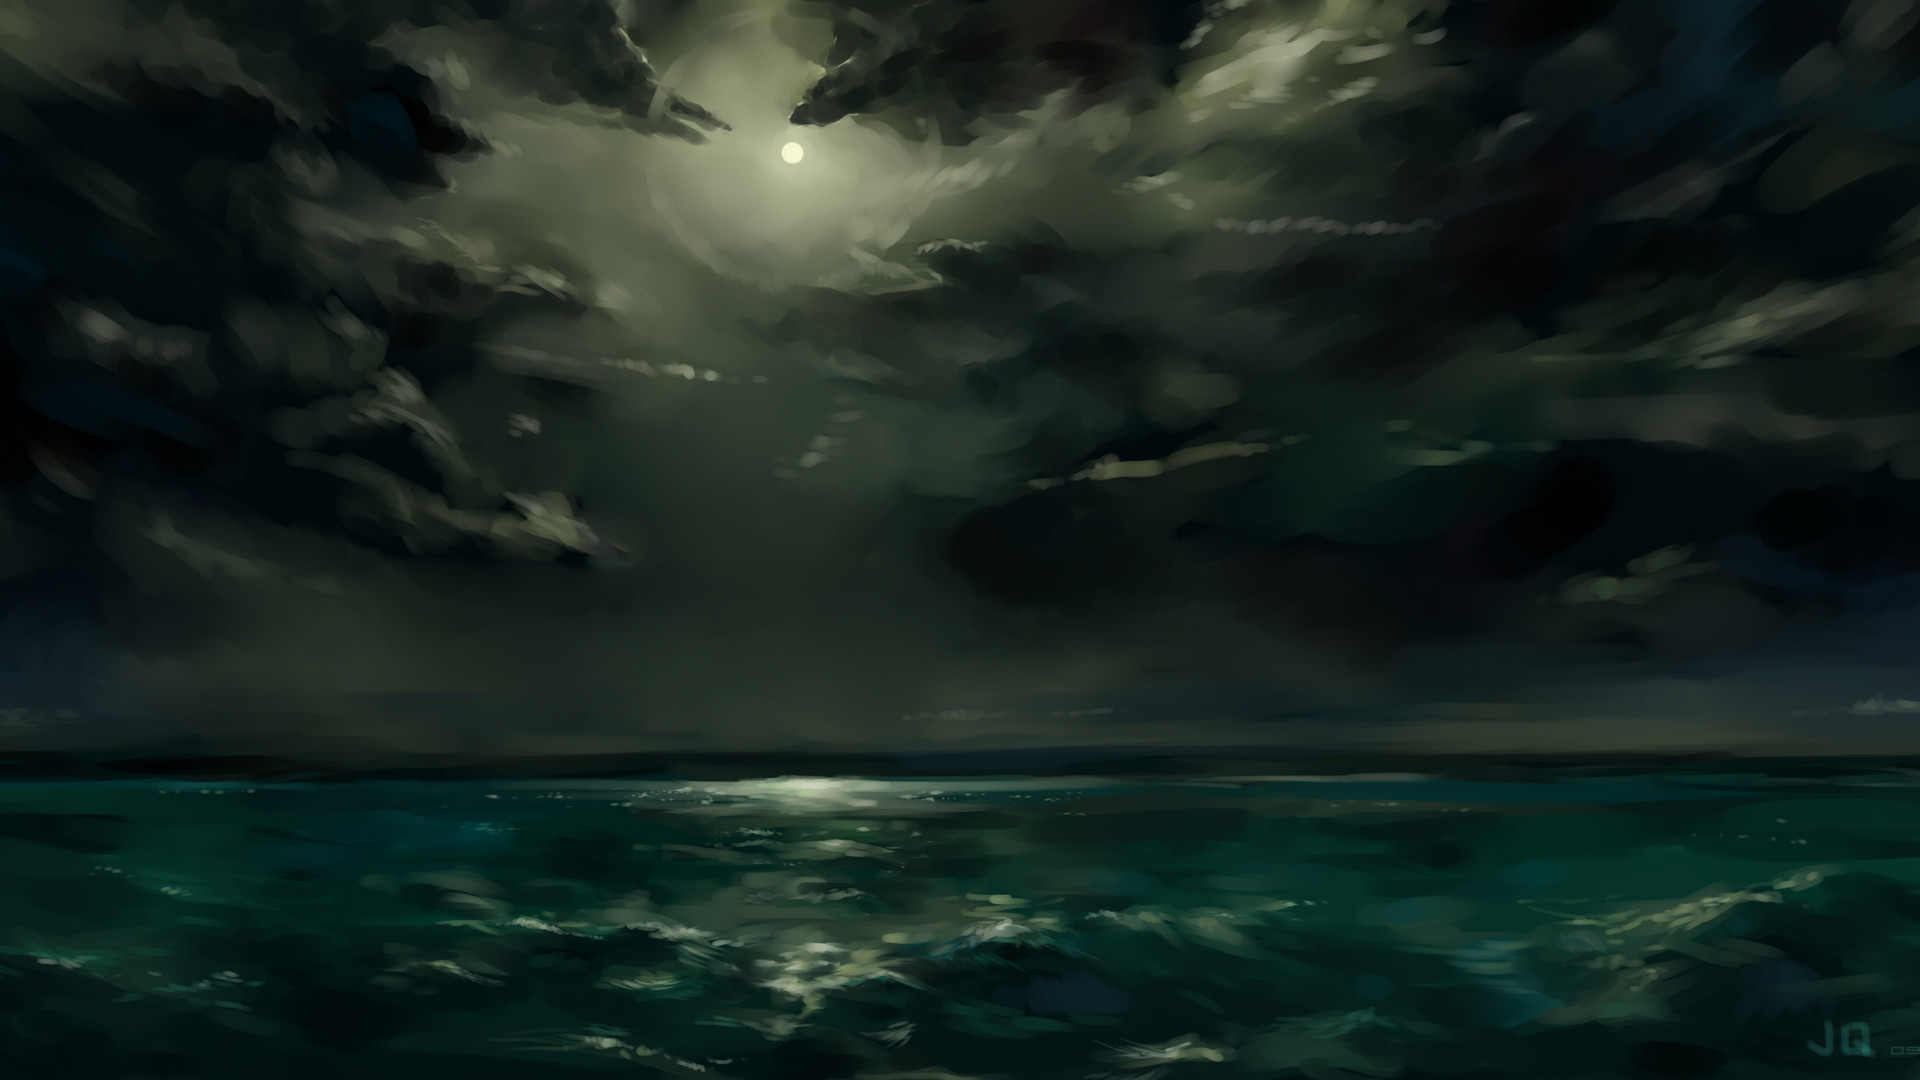 1920x1080 Clouds night storm sea wallpaper |  | 217848 | WallpaperUP